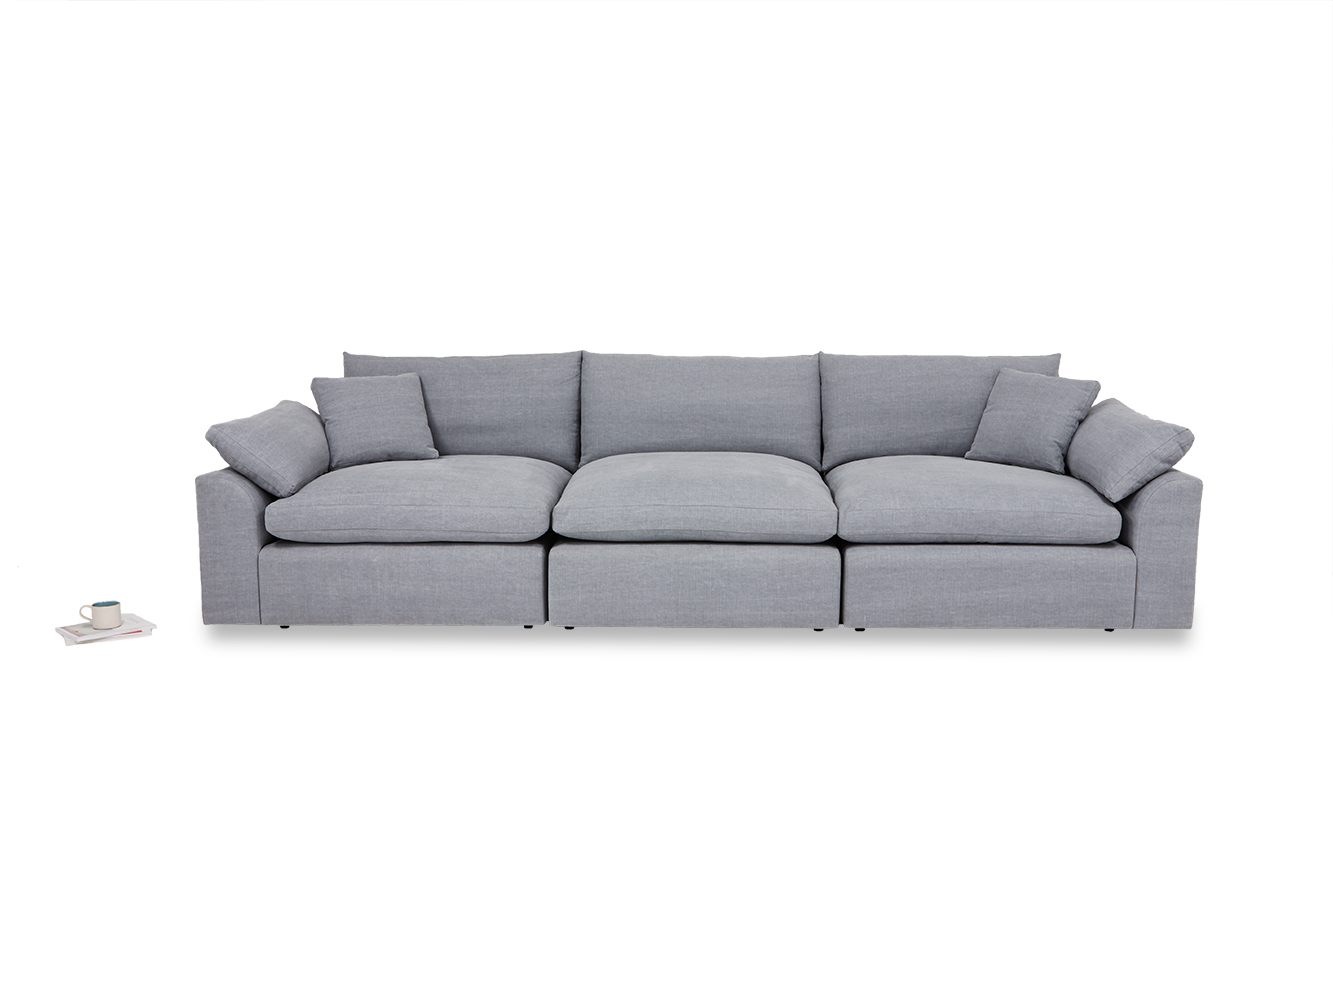 cuddle muffin sectional sofa front detail